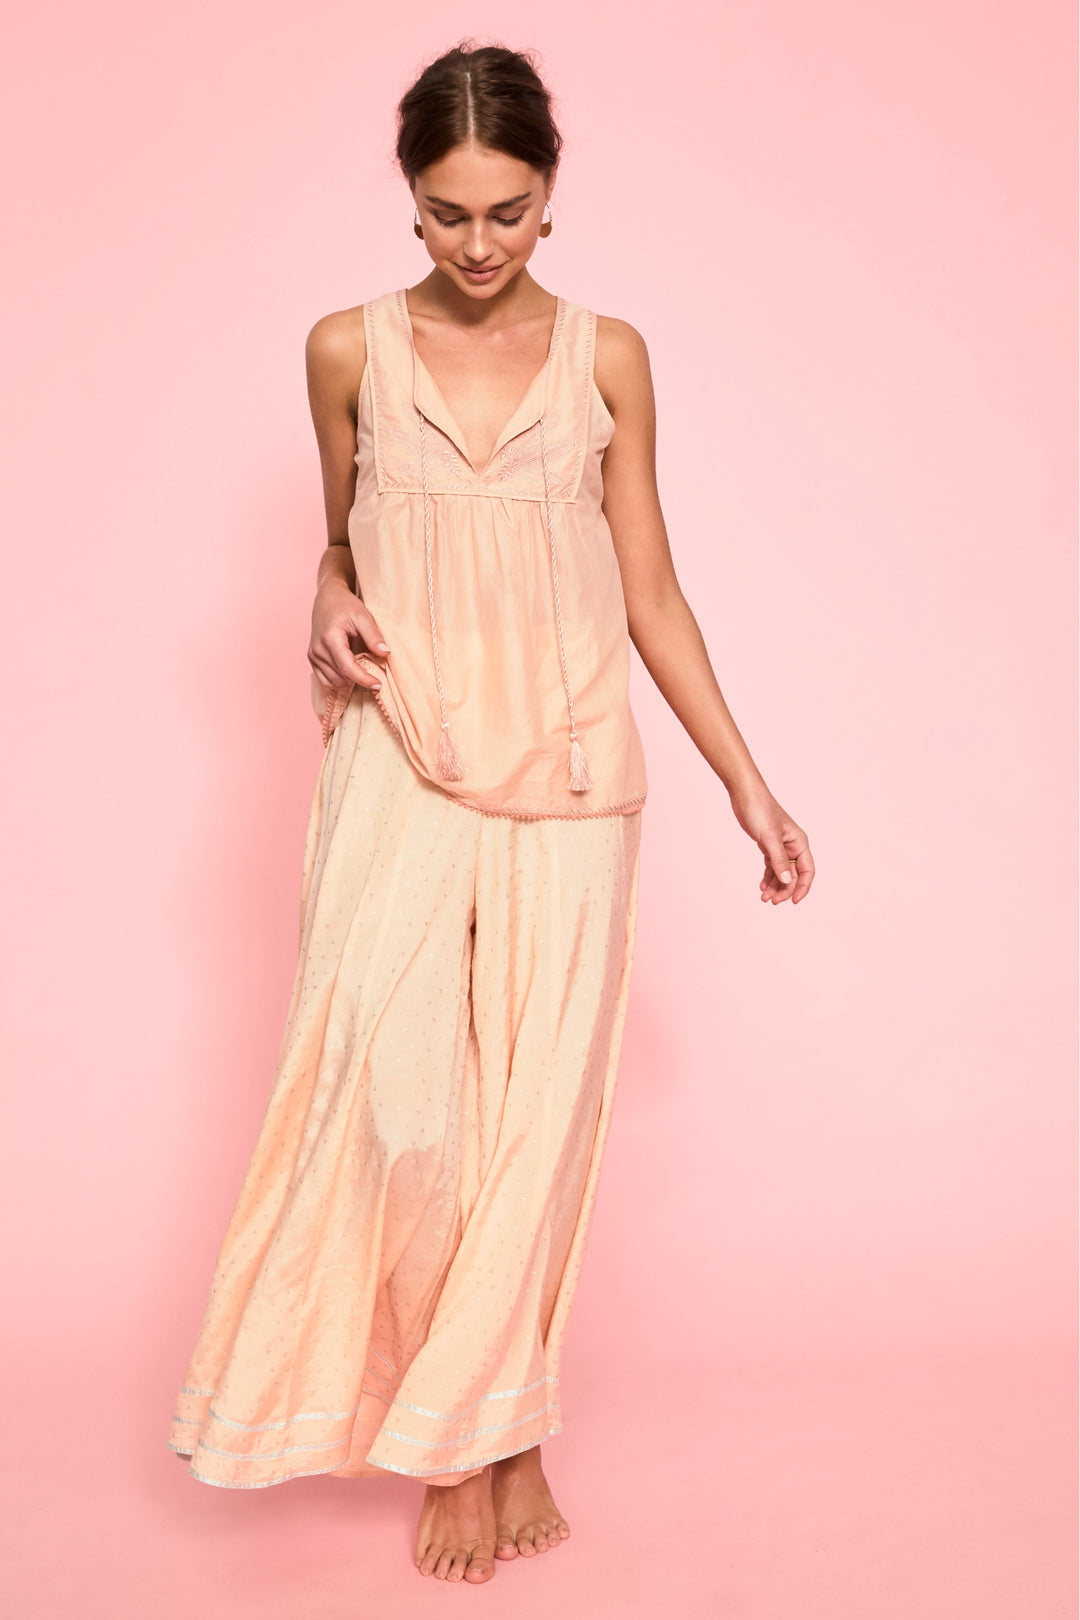 peach pink embroidered palladio camisole summer top foundling